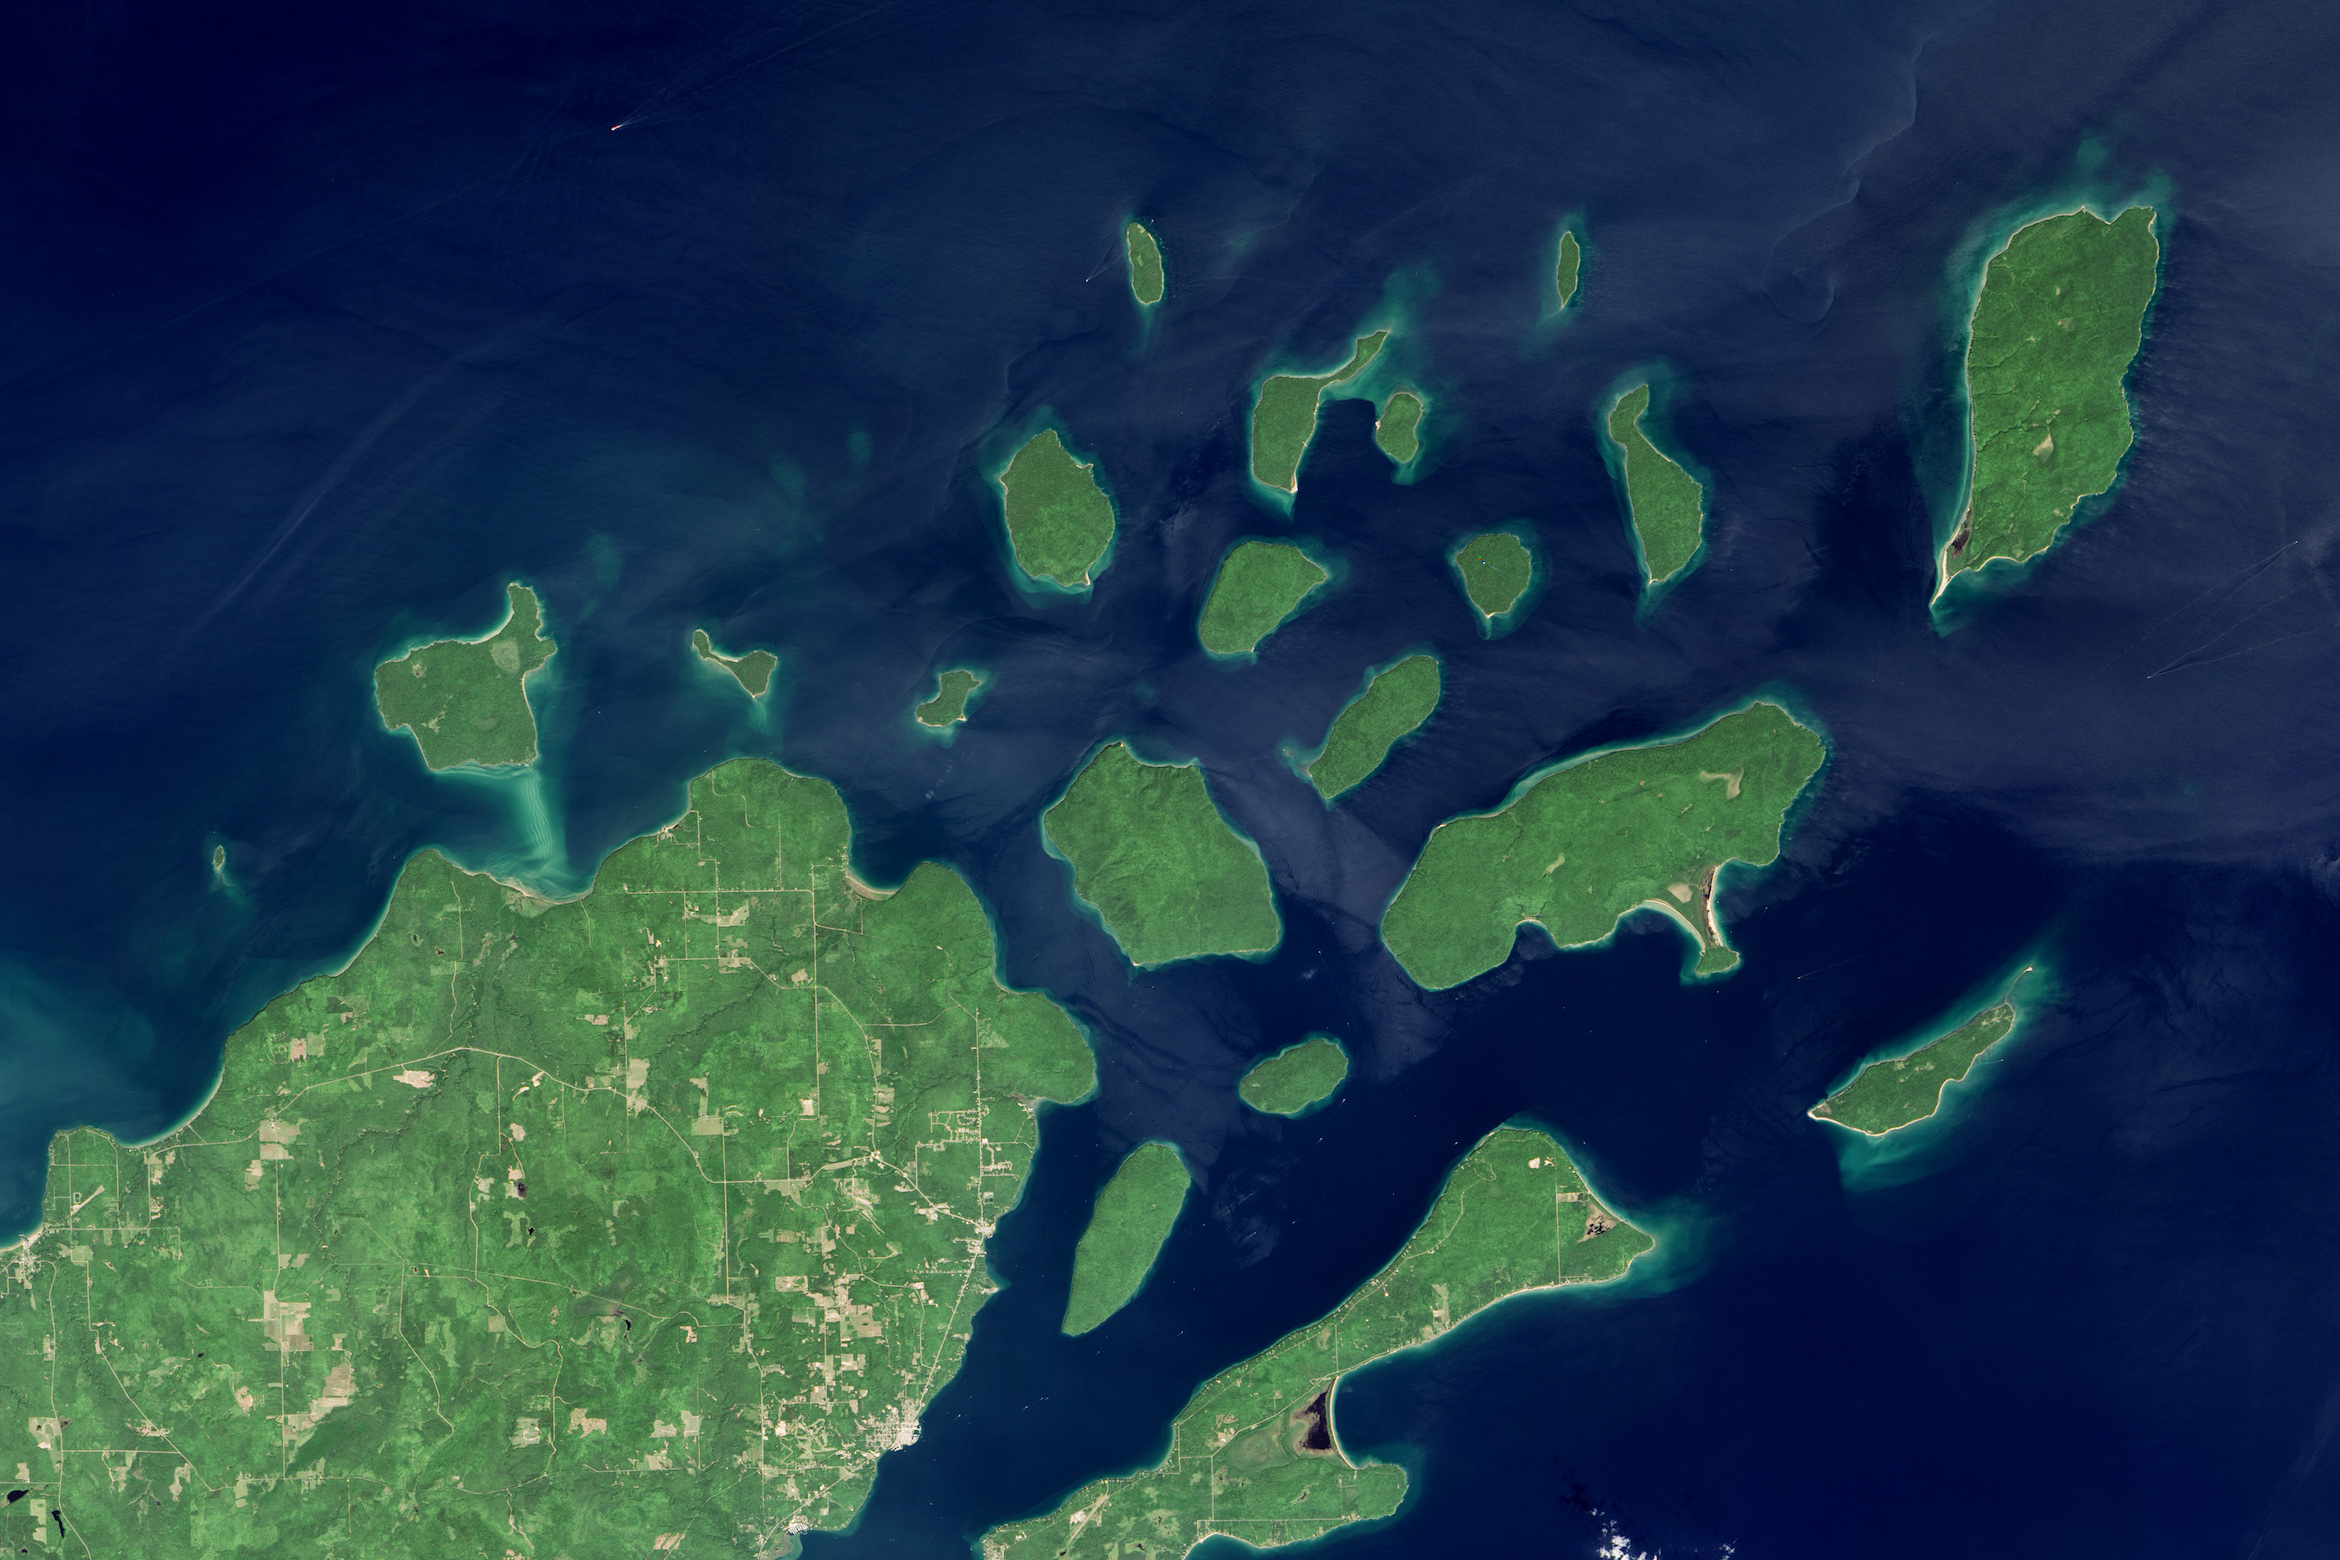 Today's Image of the Day comes thanks to the NASA Earth Observatory and features a look at the Apostle Islands of Lake Superior.